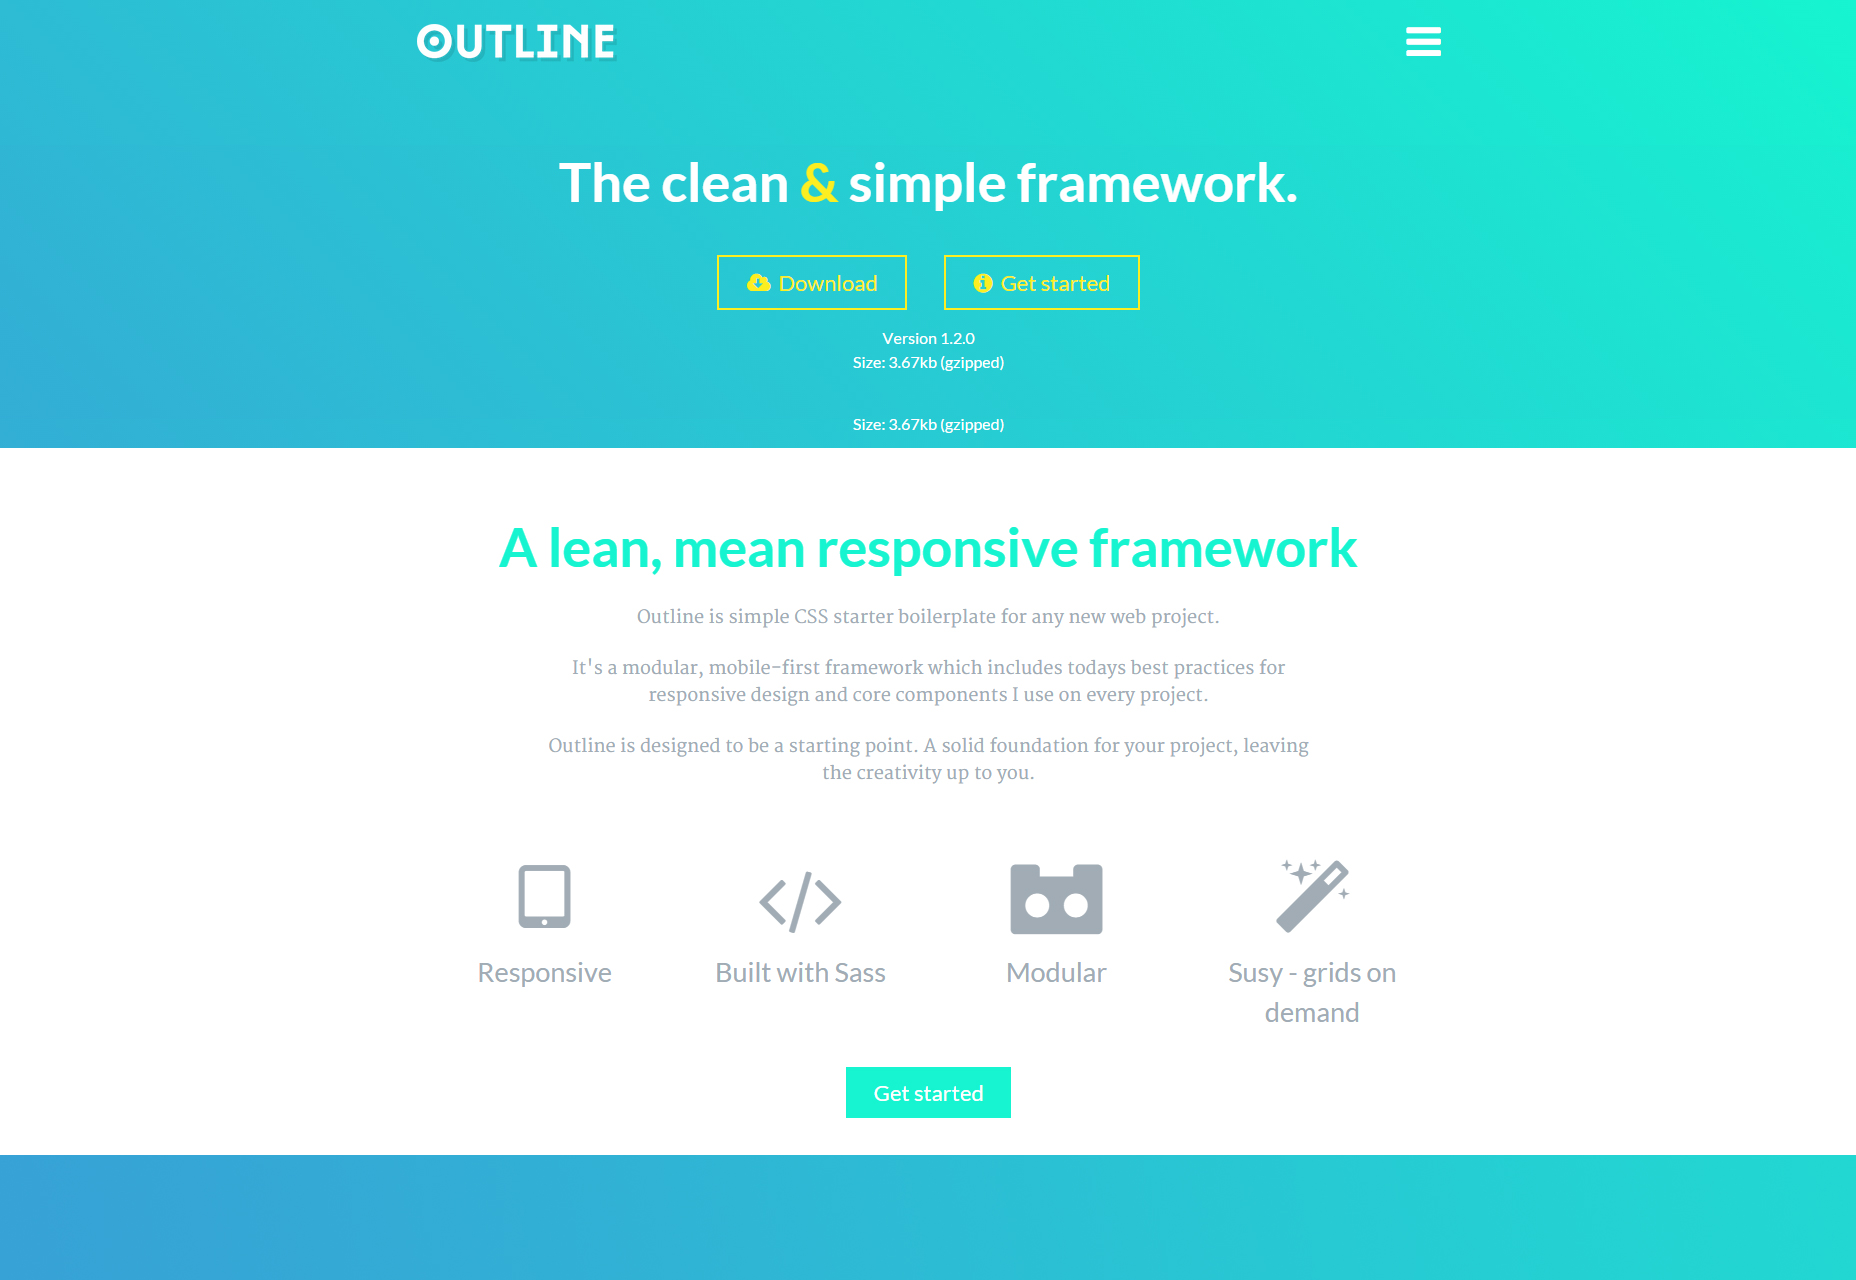 outline-the-clean-simple-responsive-css-framework